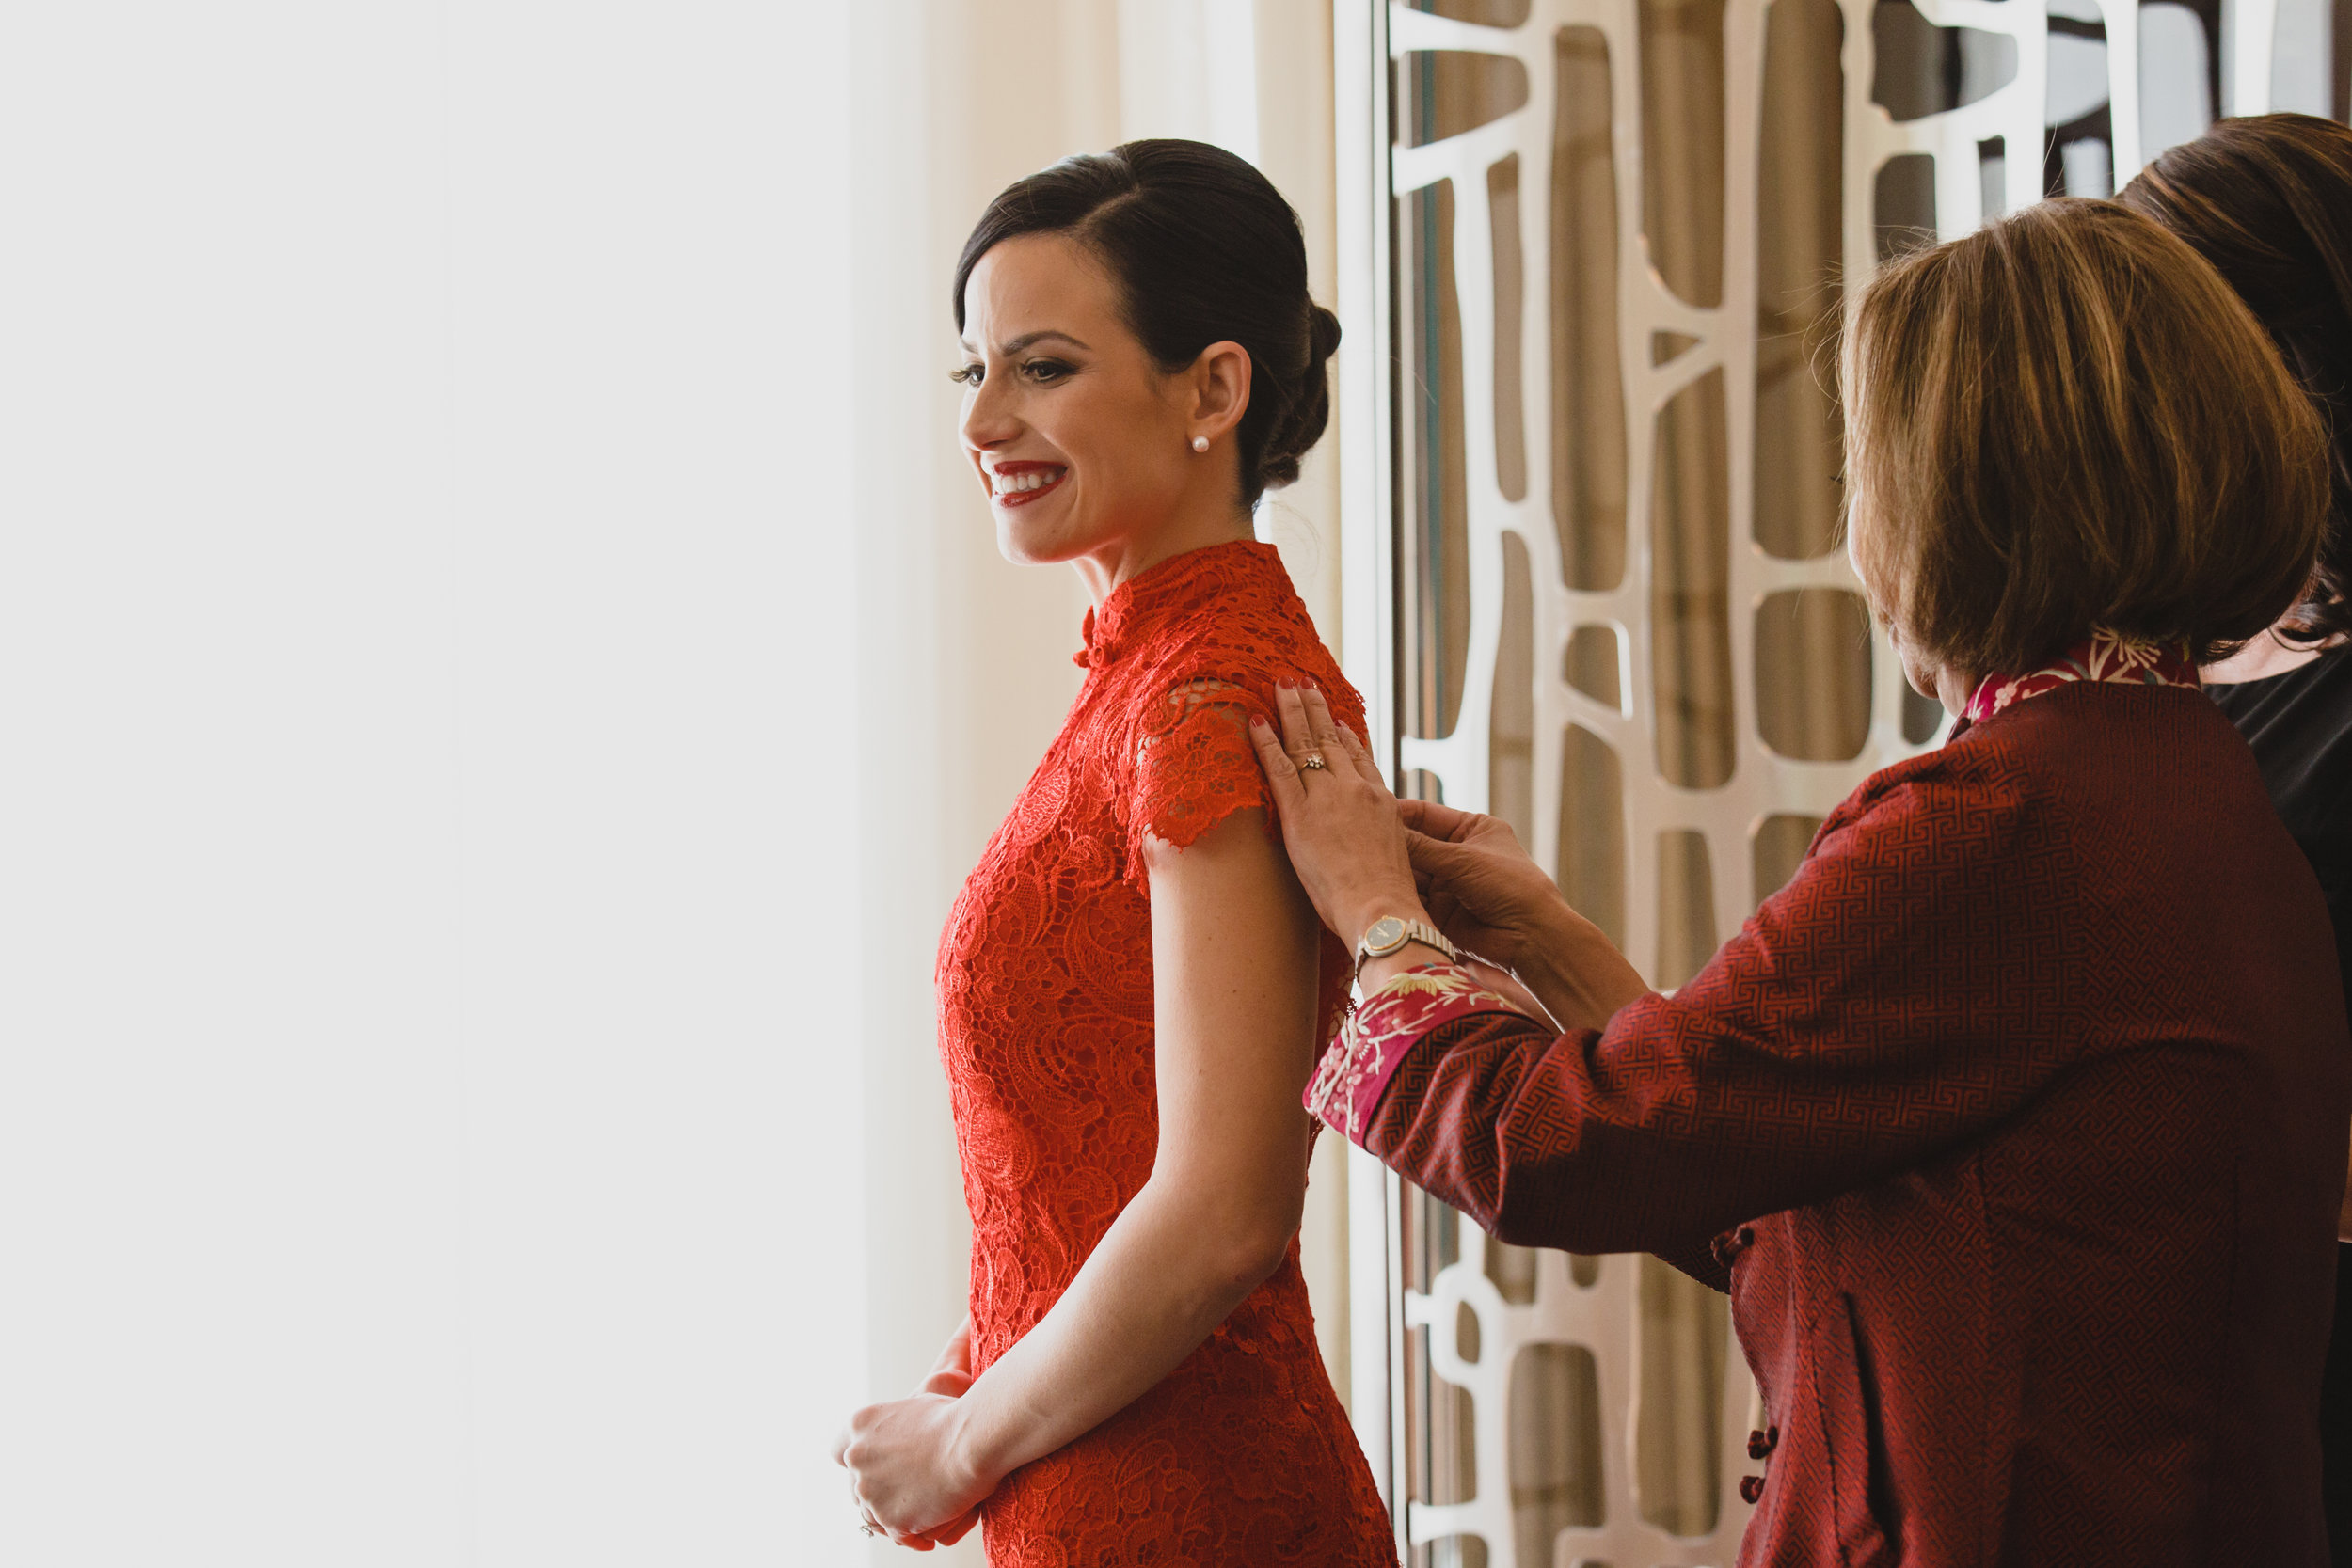 Being buttoned into red chinese lace dress. Luxury wedding at the Mandarin Oriental with a color scheme of white, blush, and pops of wine red produced by Las Vegas Wedding Planner Andrea Eppolito with photos by Stephen Salazar Photography.